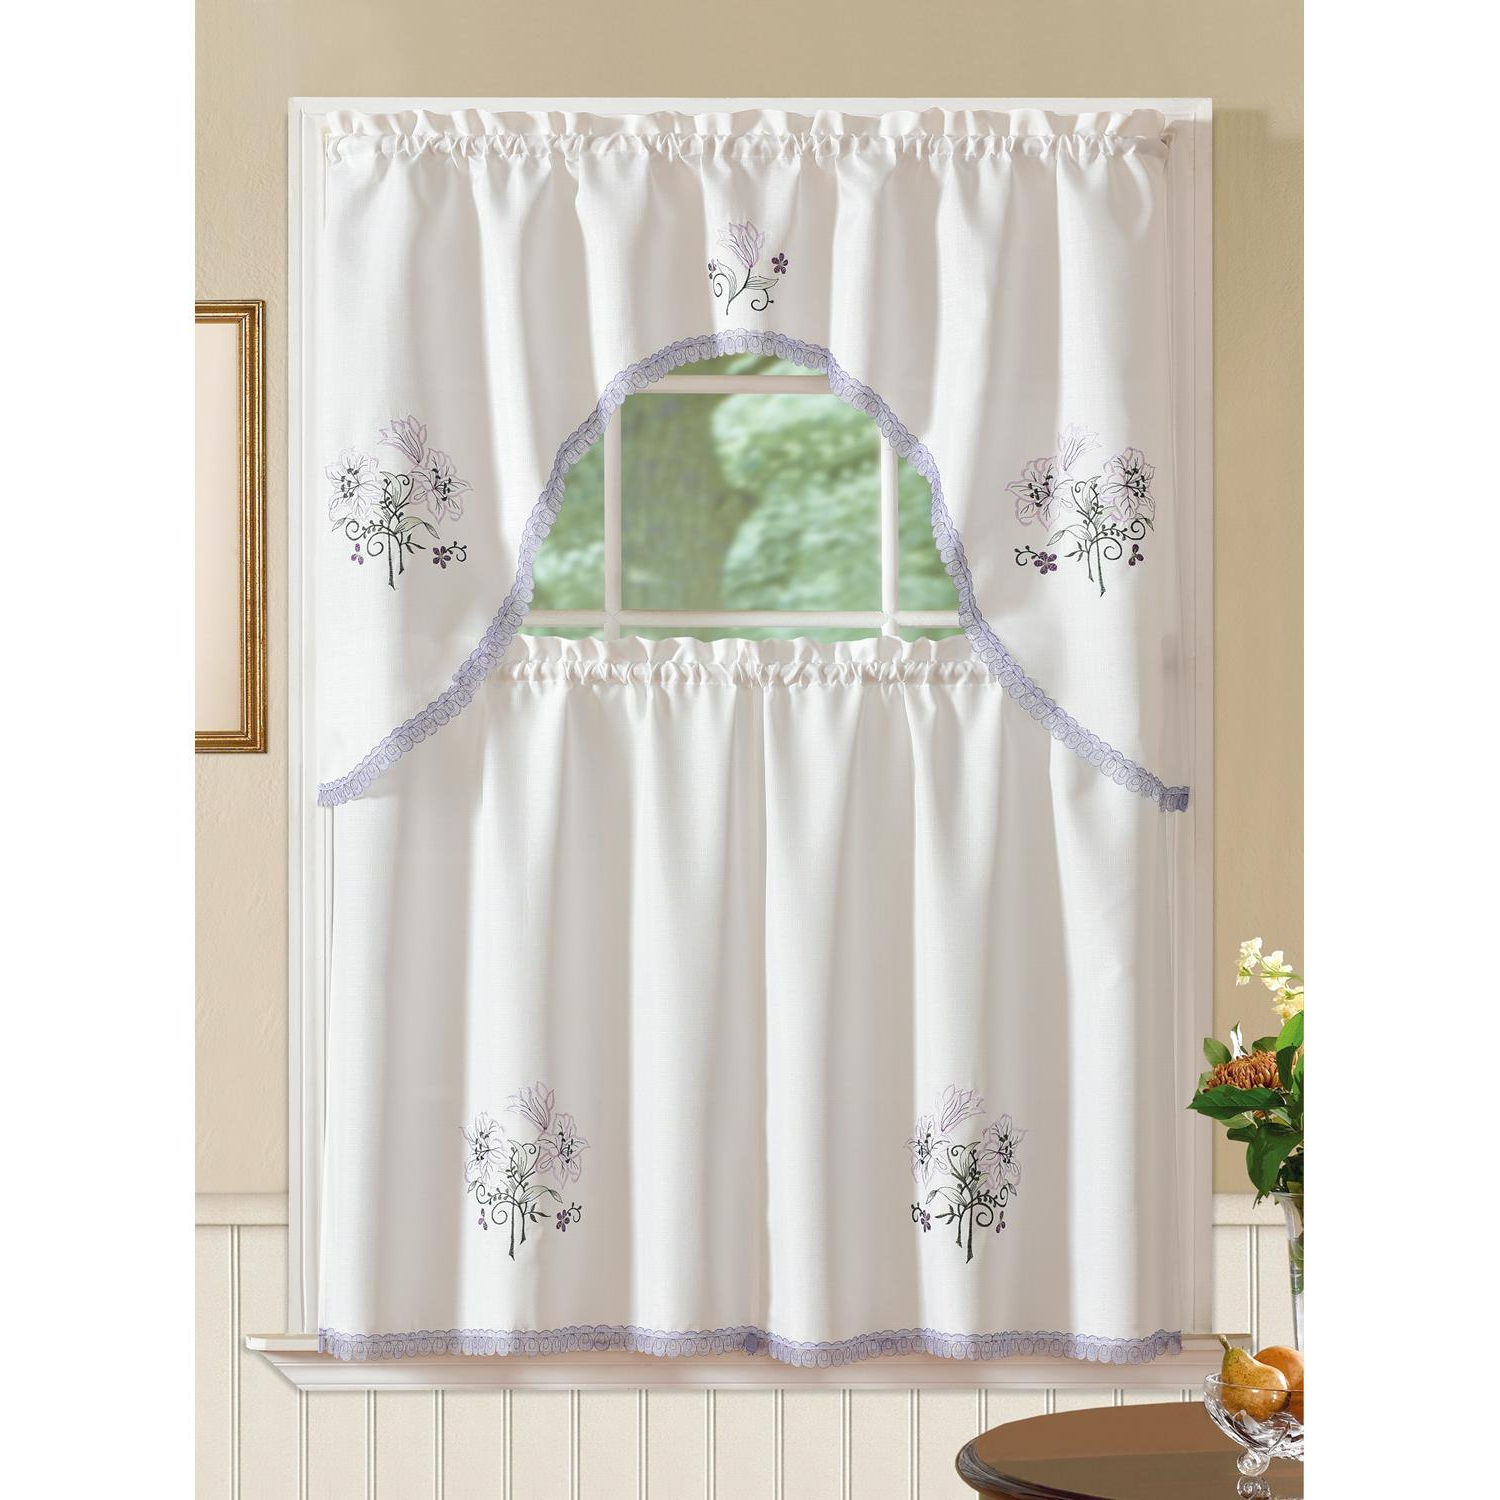 Popular Details About Regal Embroidered Lily Kitchen Curtain Set With Regard To Embroidered 'coffee Cup' 5 Piece Kitchen Curtain Sets (View 3 of 20)